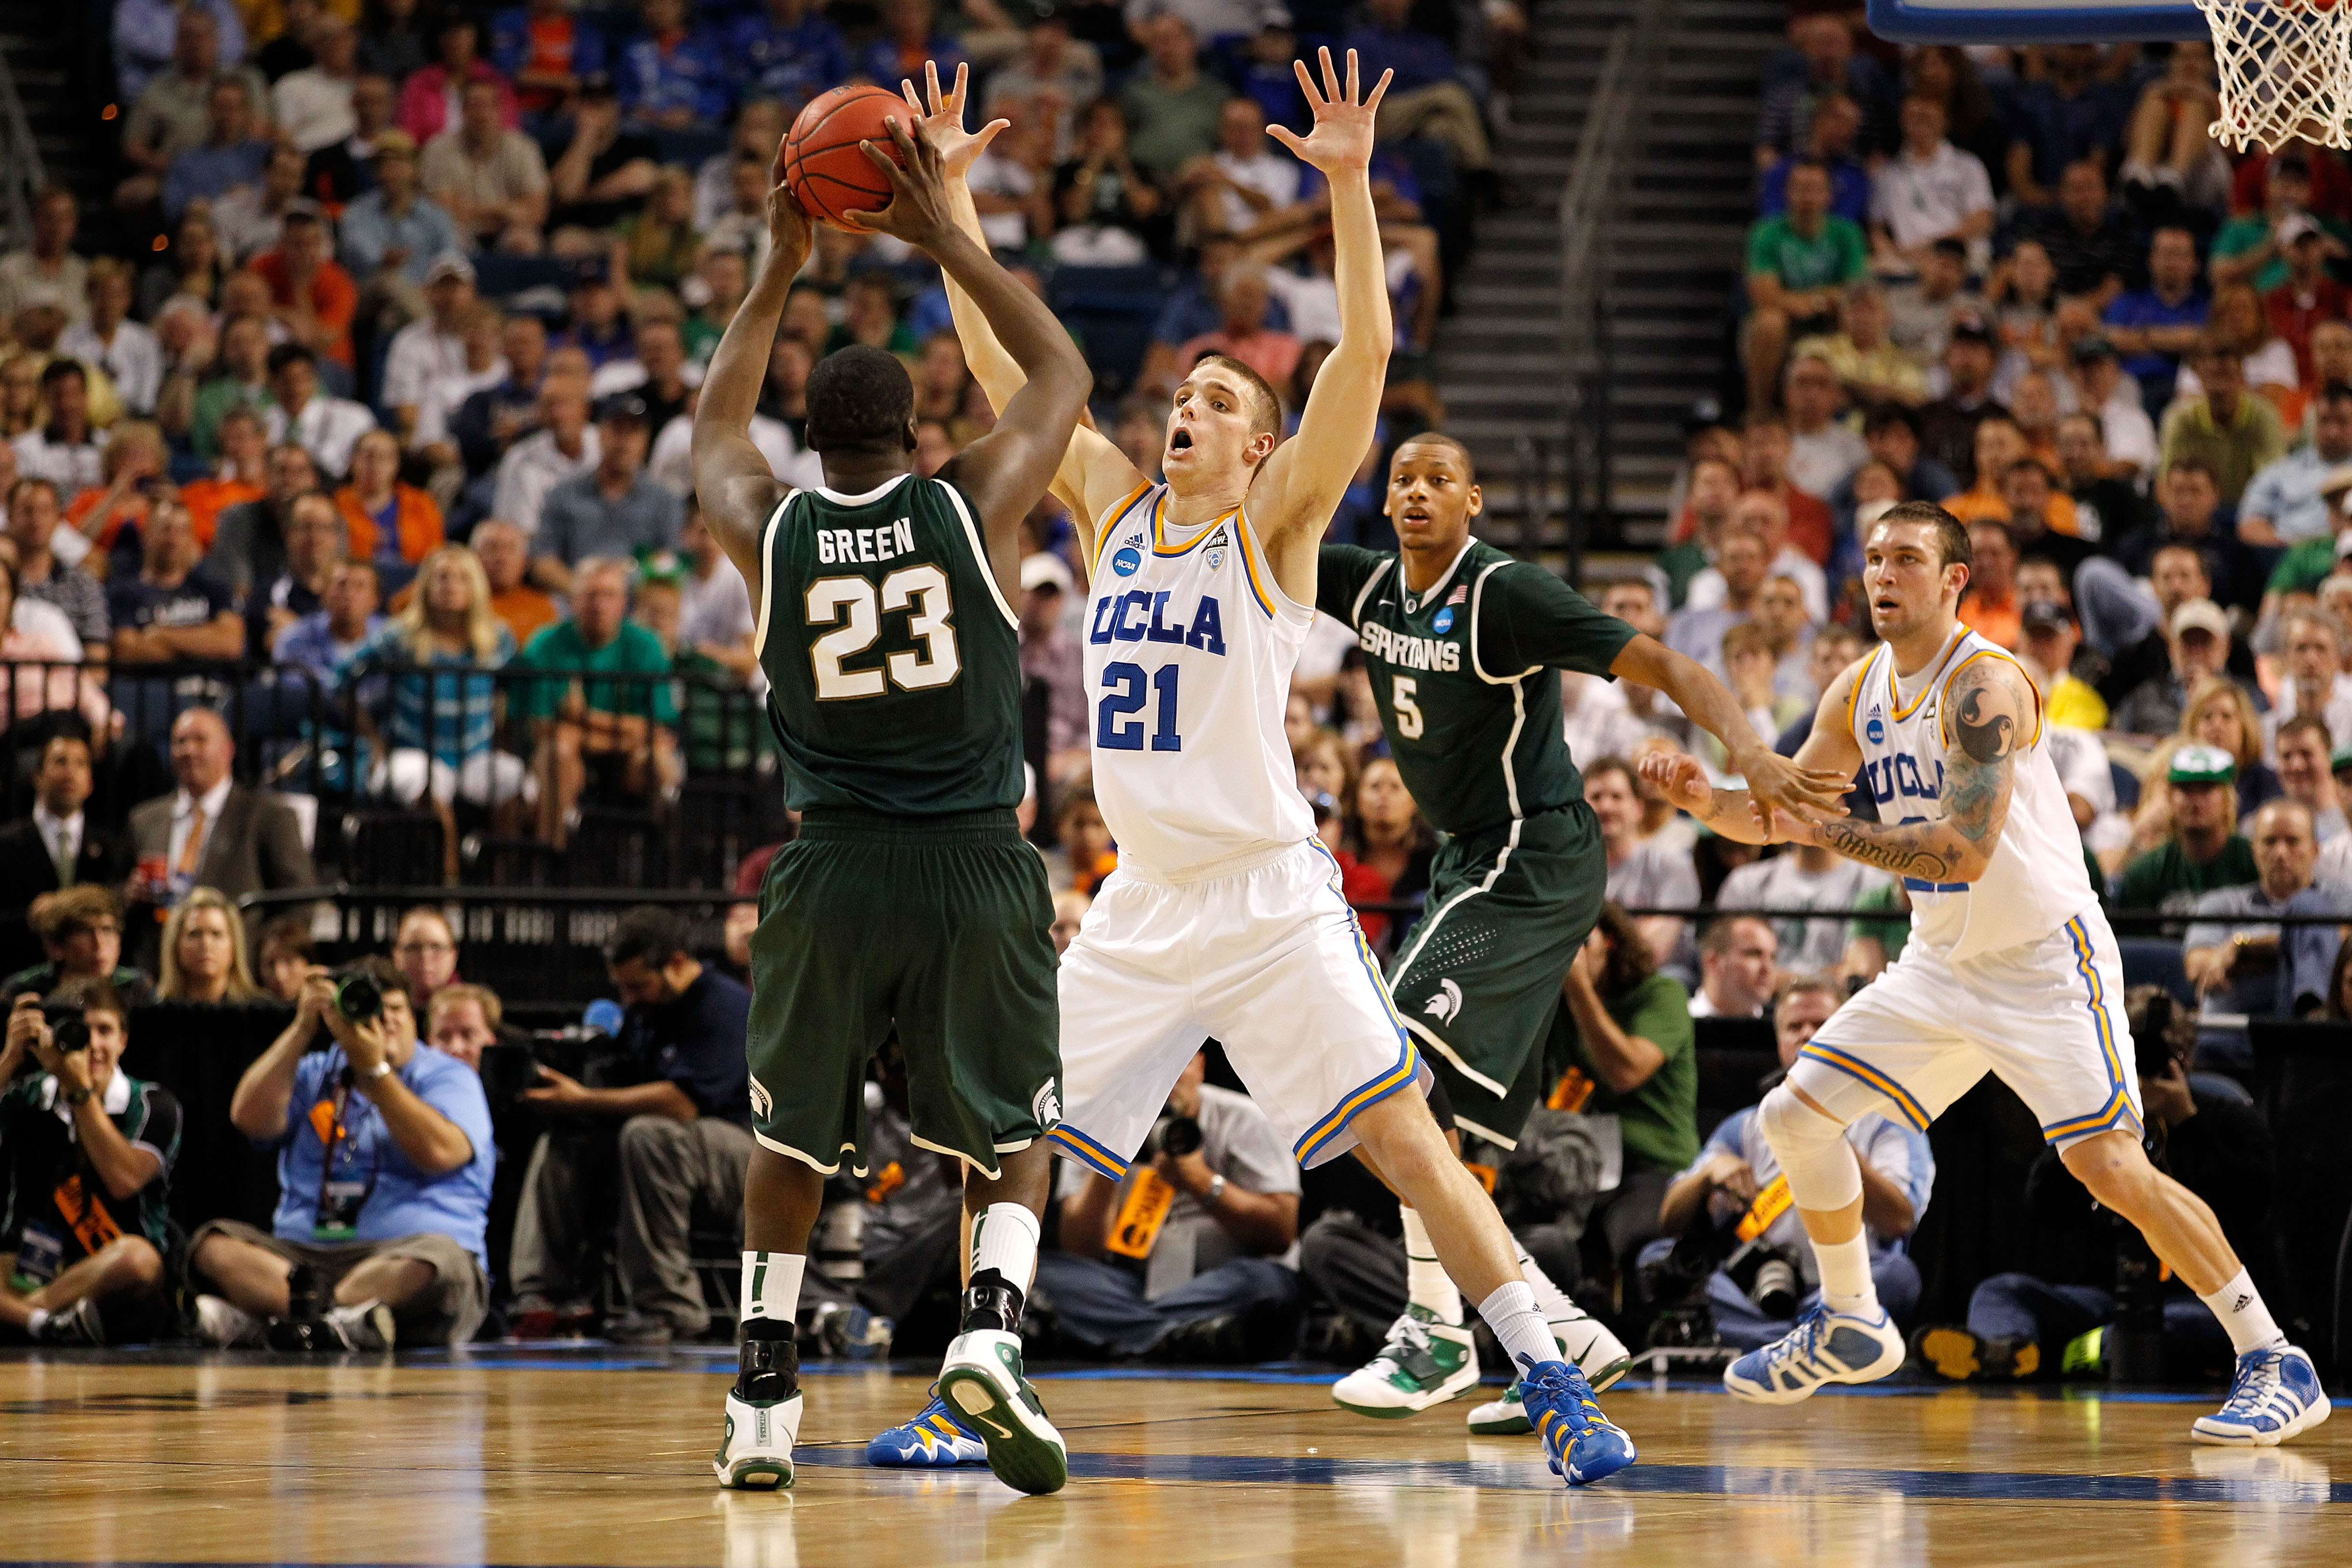 TAMPA, FL - MARCH 17:  Brendan Lane #21 of the UCLA Bruins defends against Draymond Green #23 of the Michigan State Spartans during the second round of the 2011 NCAA men's basketball tournament at St. Pete Times Forum on March 17, 2011 in Tampa, Florida.